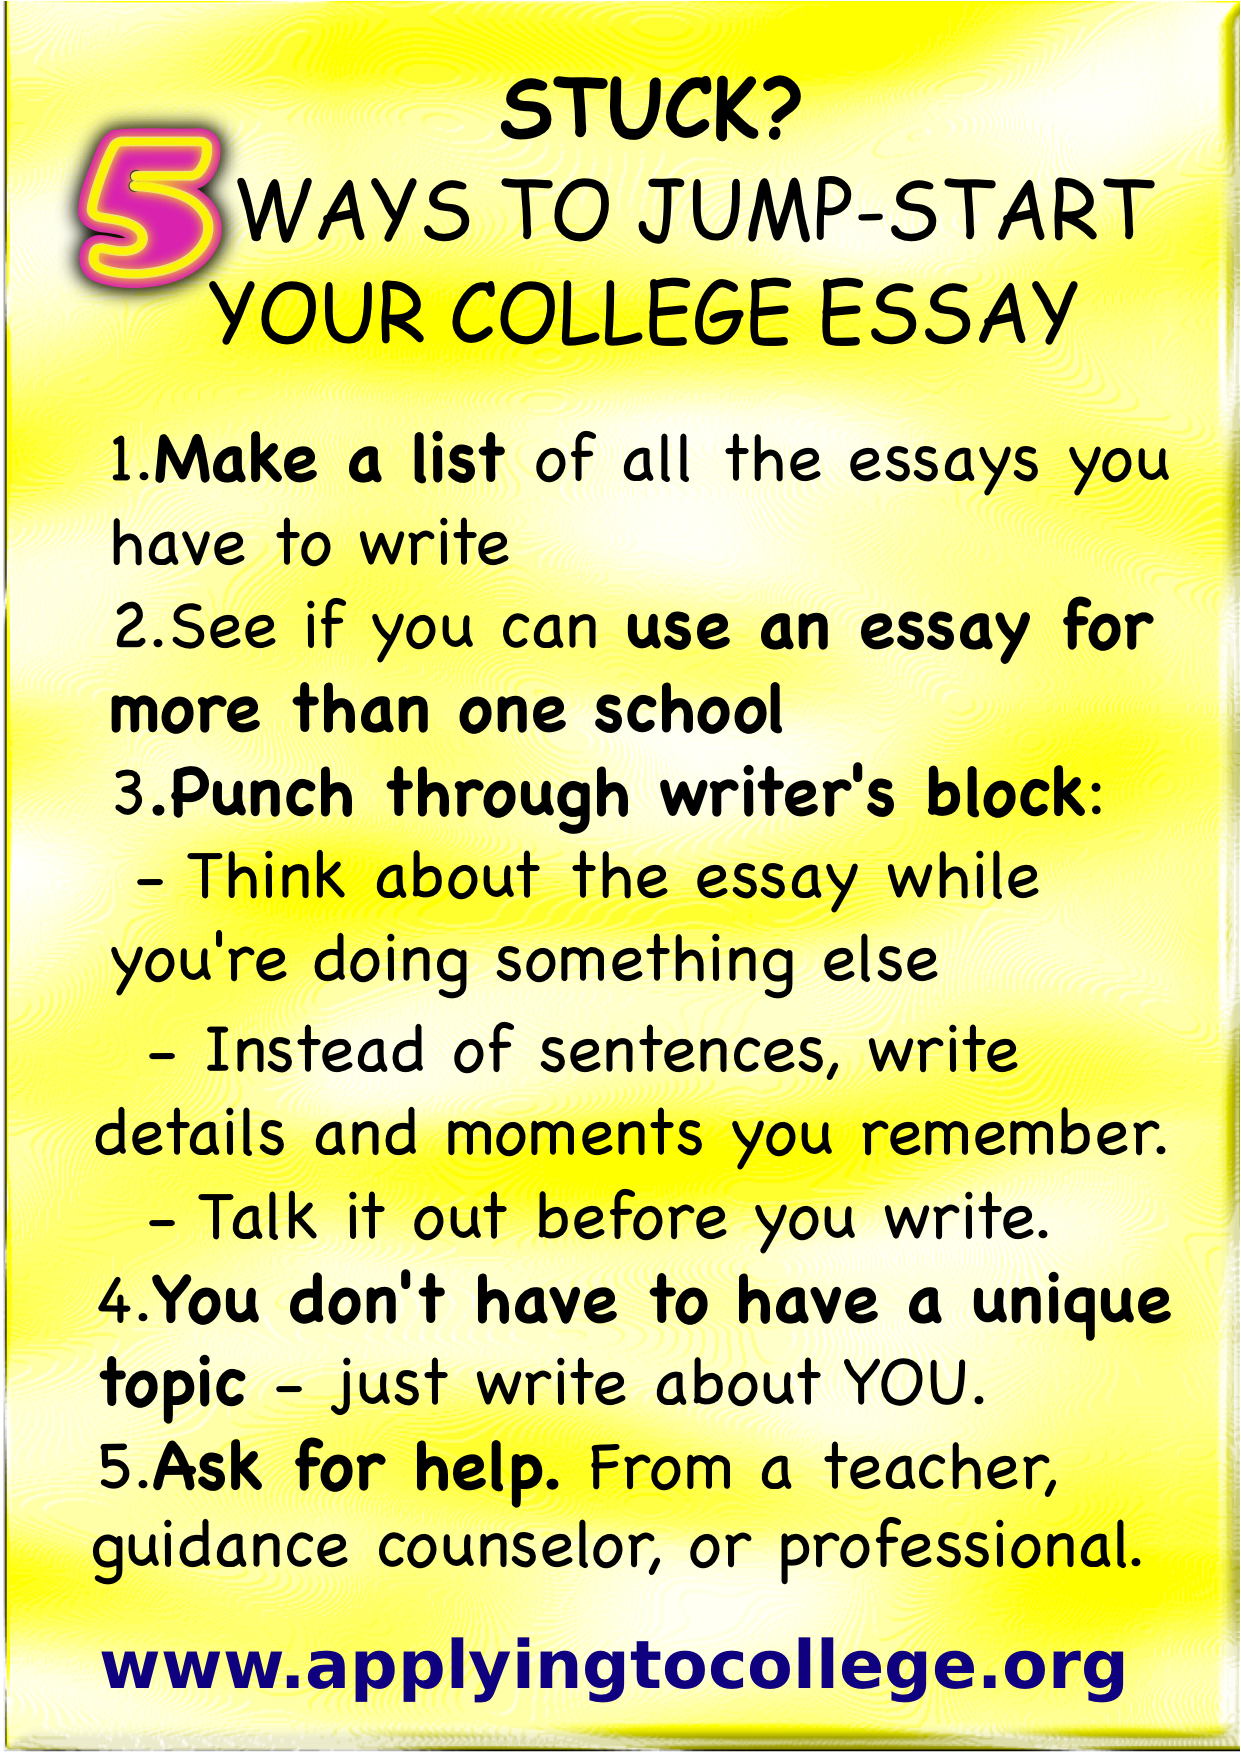 How to write essay for college application